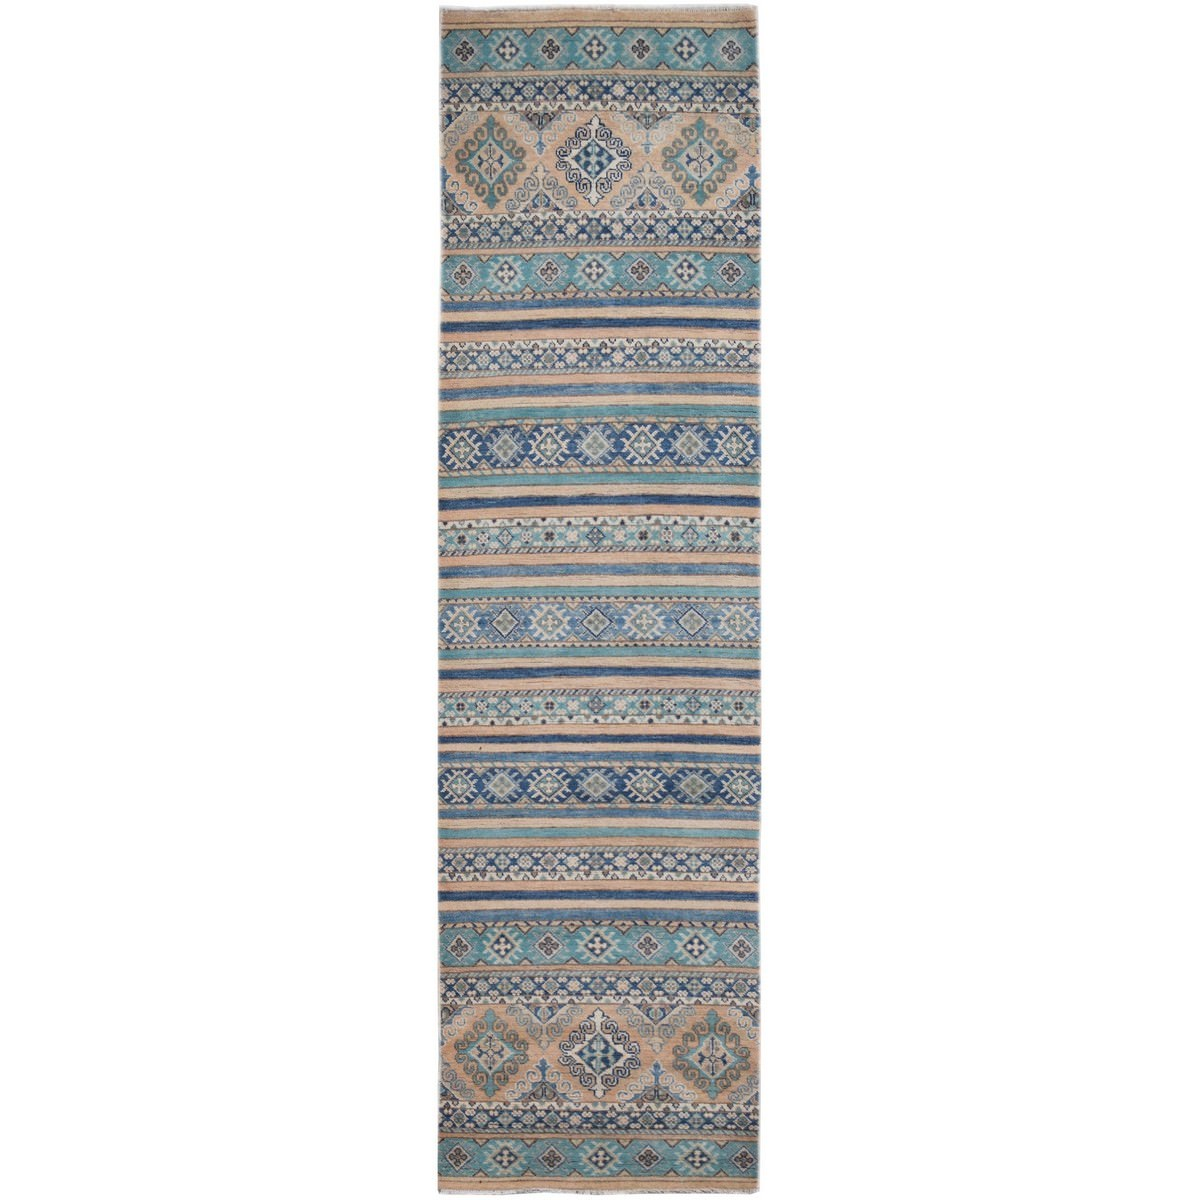 One of A Kind Giles Hand Knotted Wool Sultan Runner Rug, 292x75cm